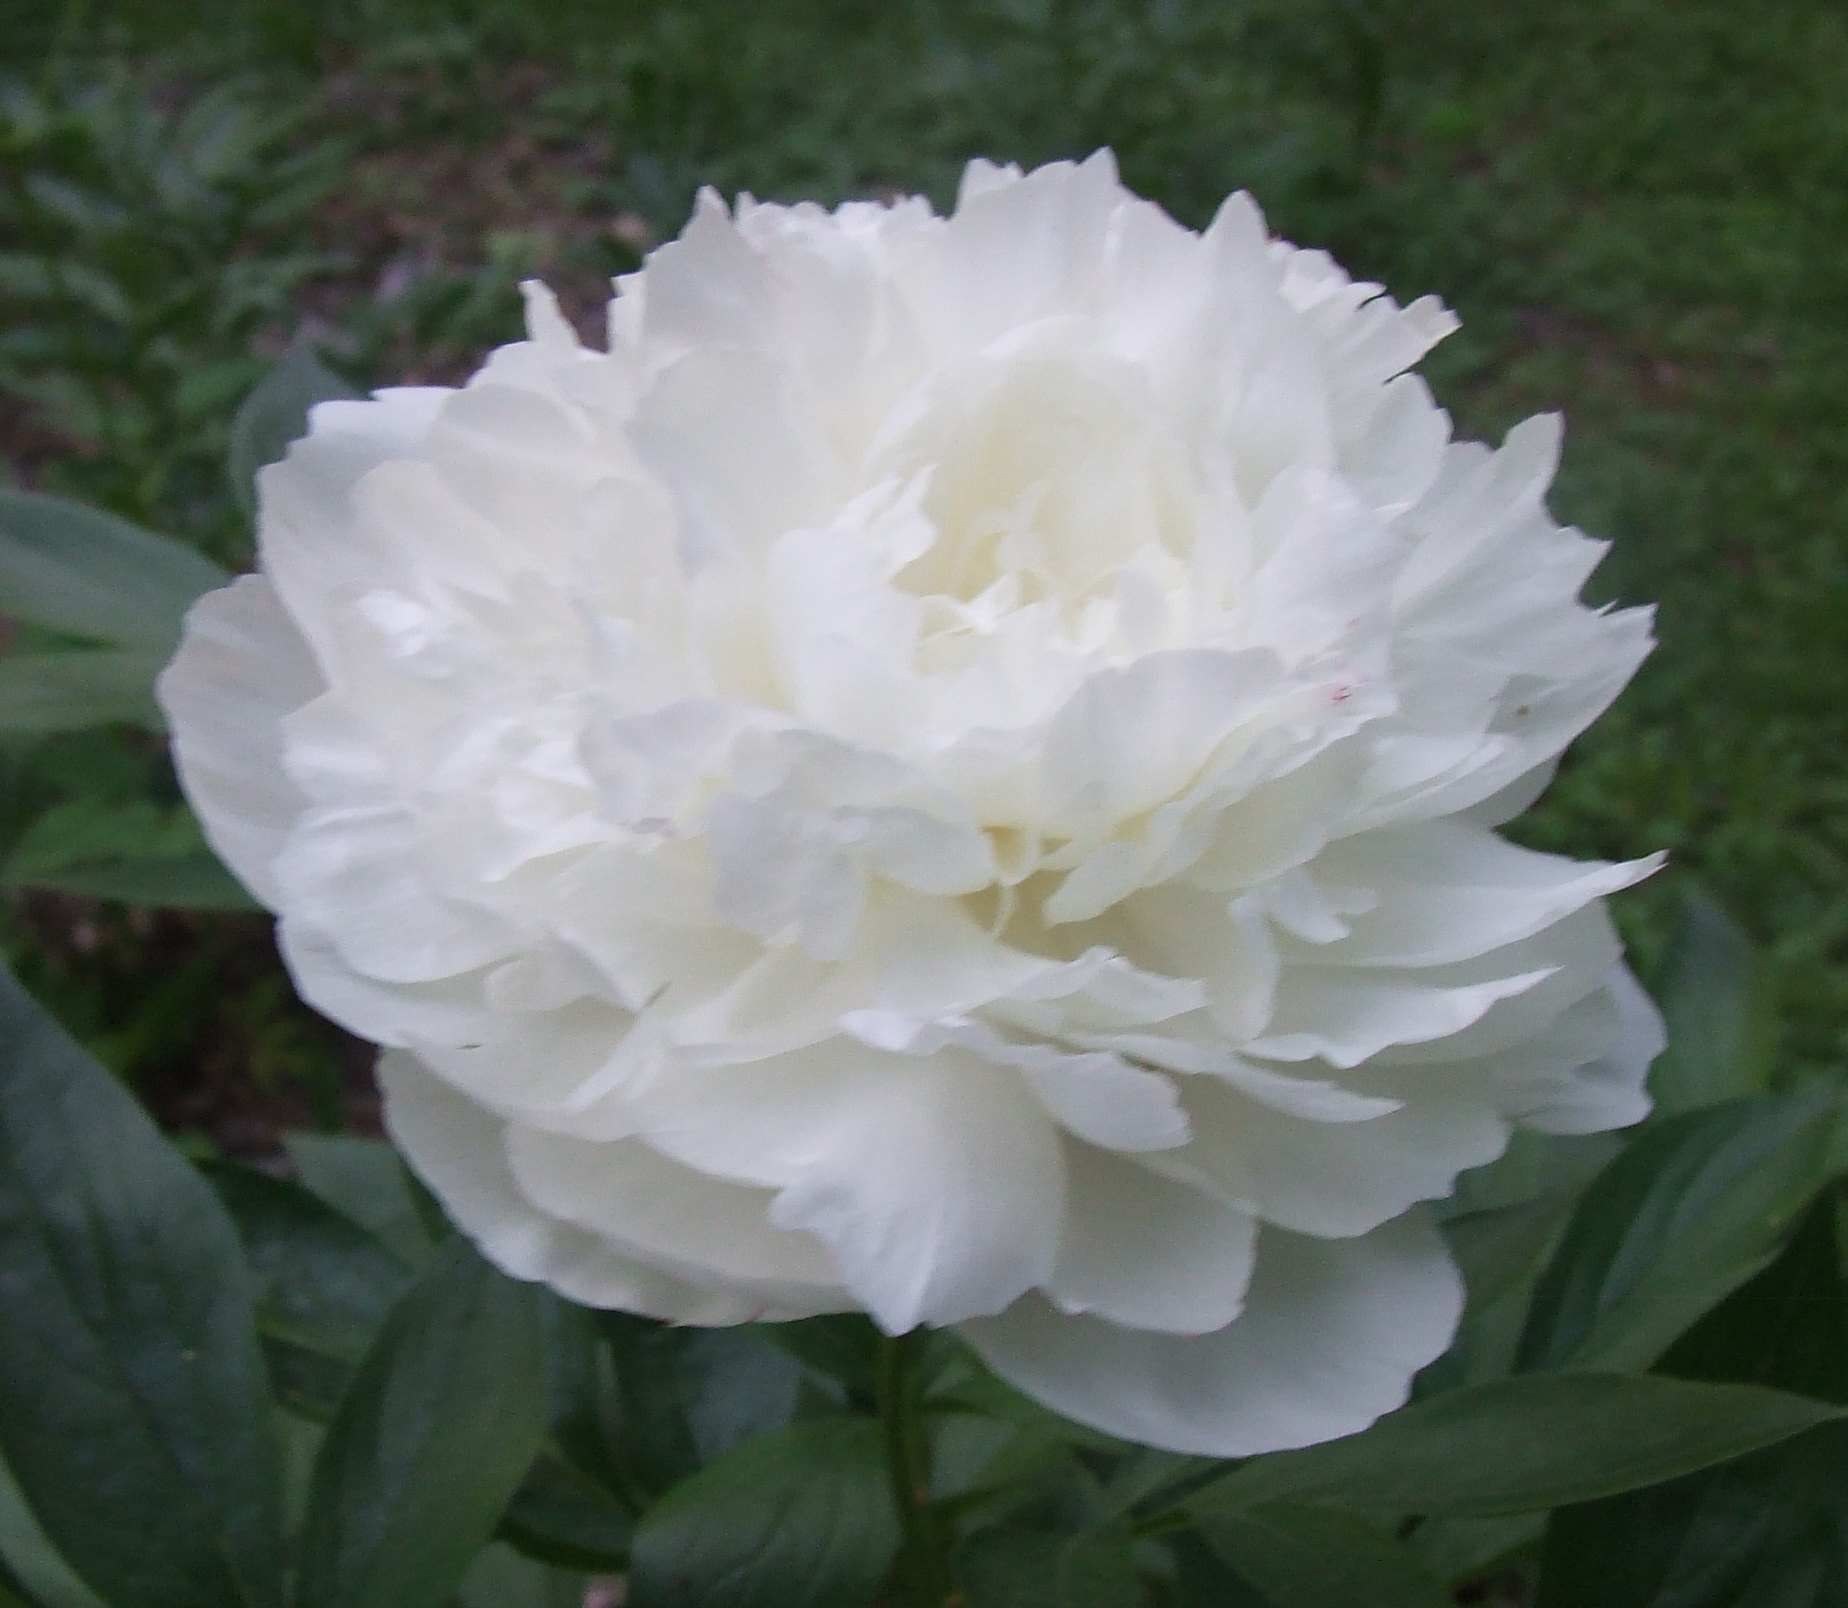 White Peonies Flower Above A Single White Peony Flower That Is